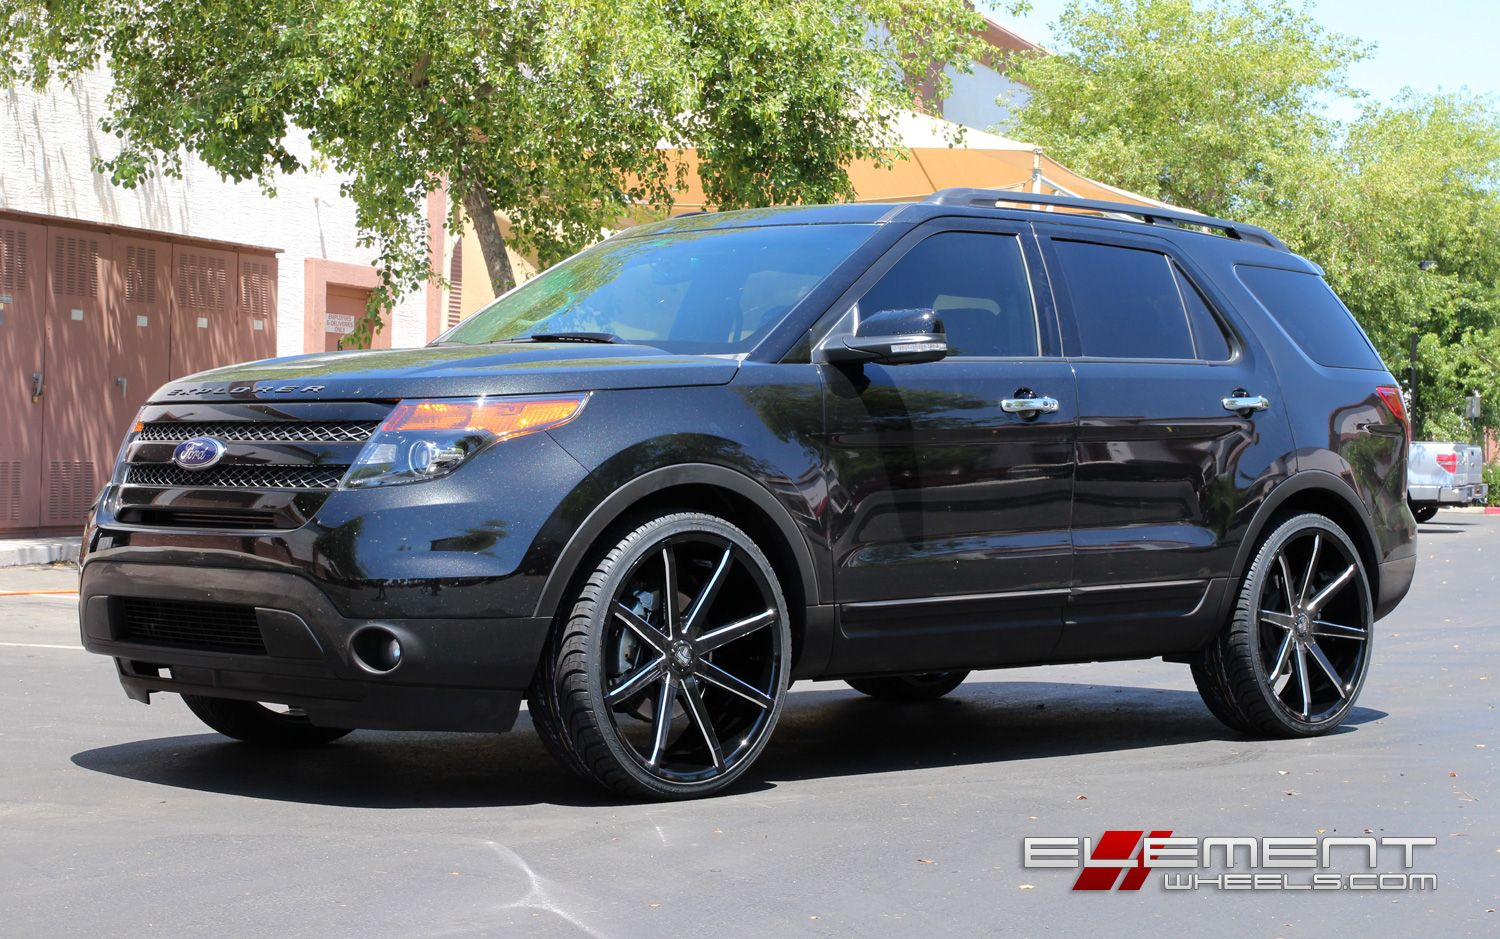 Best 25 2013 ford explorer ideas on pinterest ford explorer sport 2014 ford explorer and explorer sport